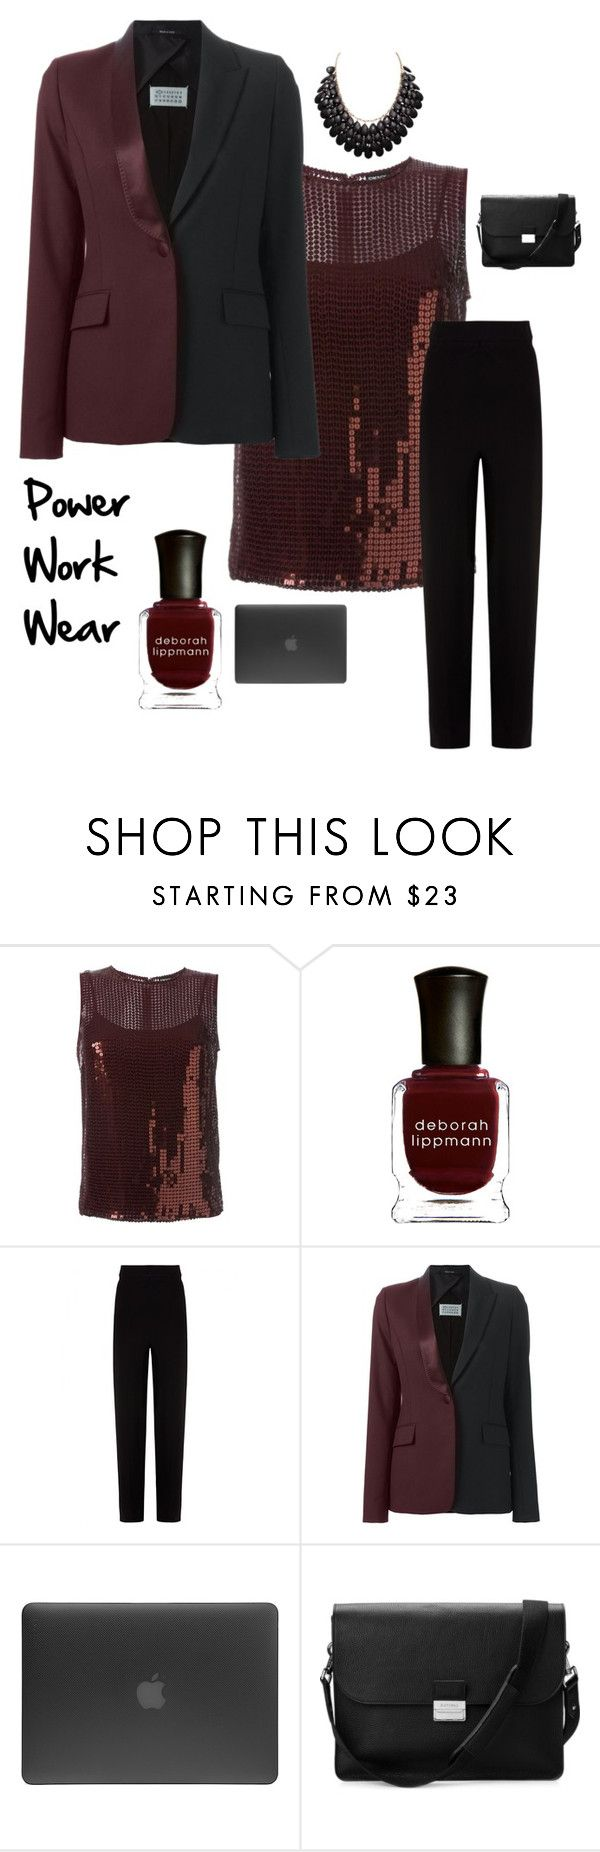 """power work wear"" by im-karla-with-a-k ❤ liked on Polyvore featuring DKNY, Deborah Lippmann, Balenciaga, Maison Margiela, Incase and Aspinal of London"